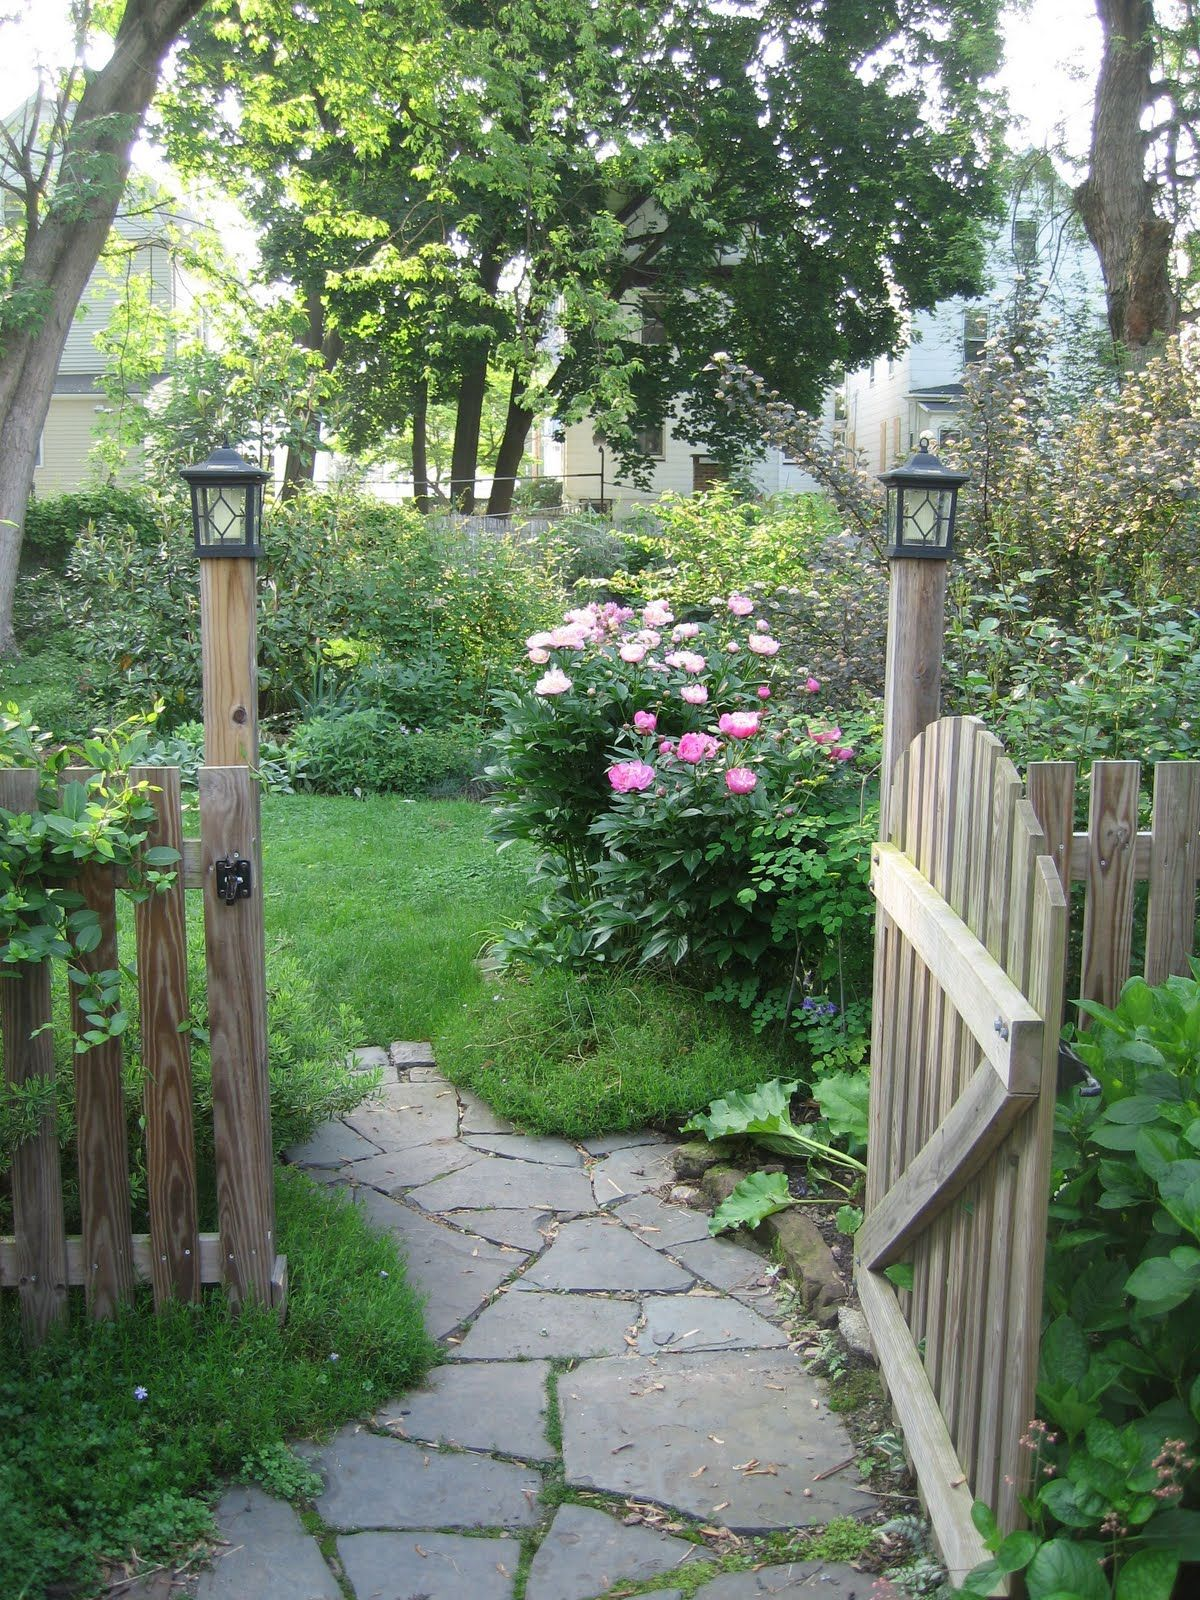 Flagstone pathway through a wooden gate...going into a backyard ...